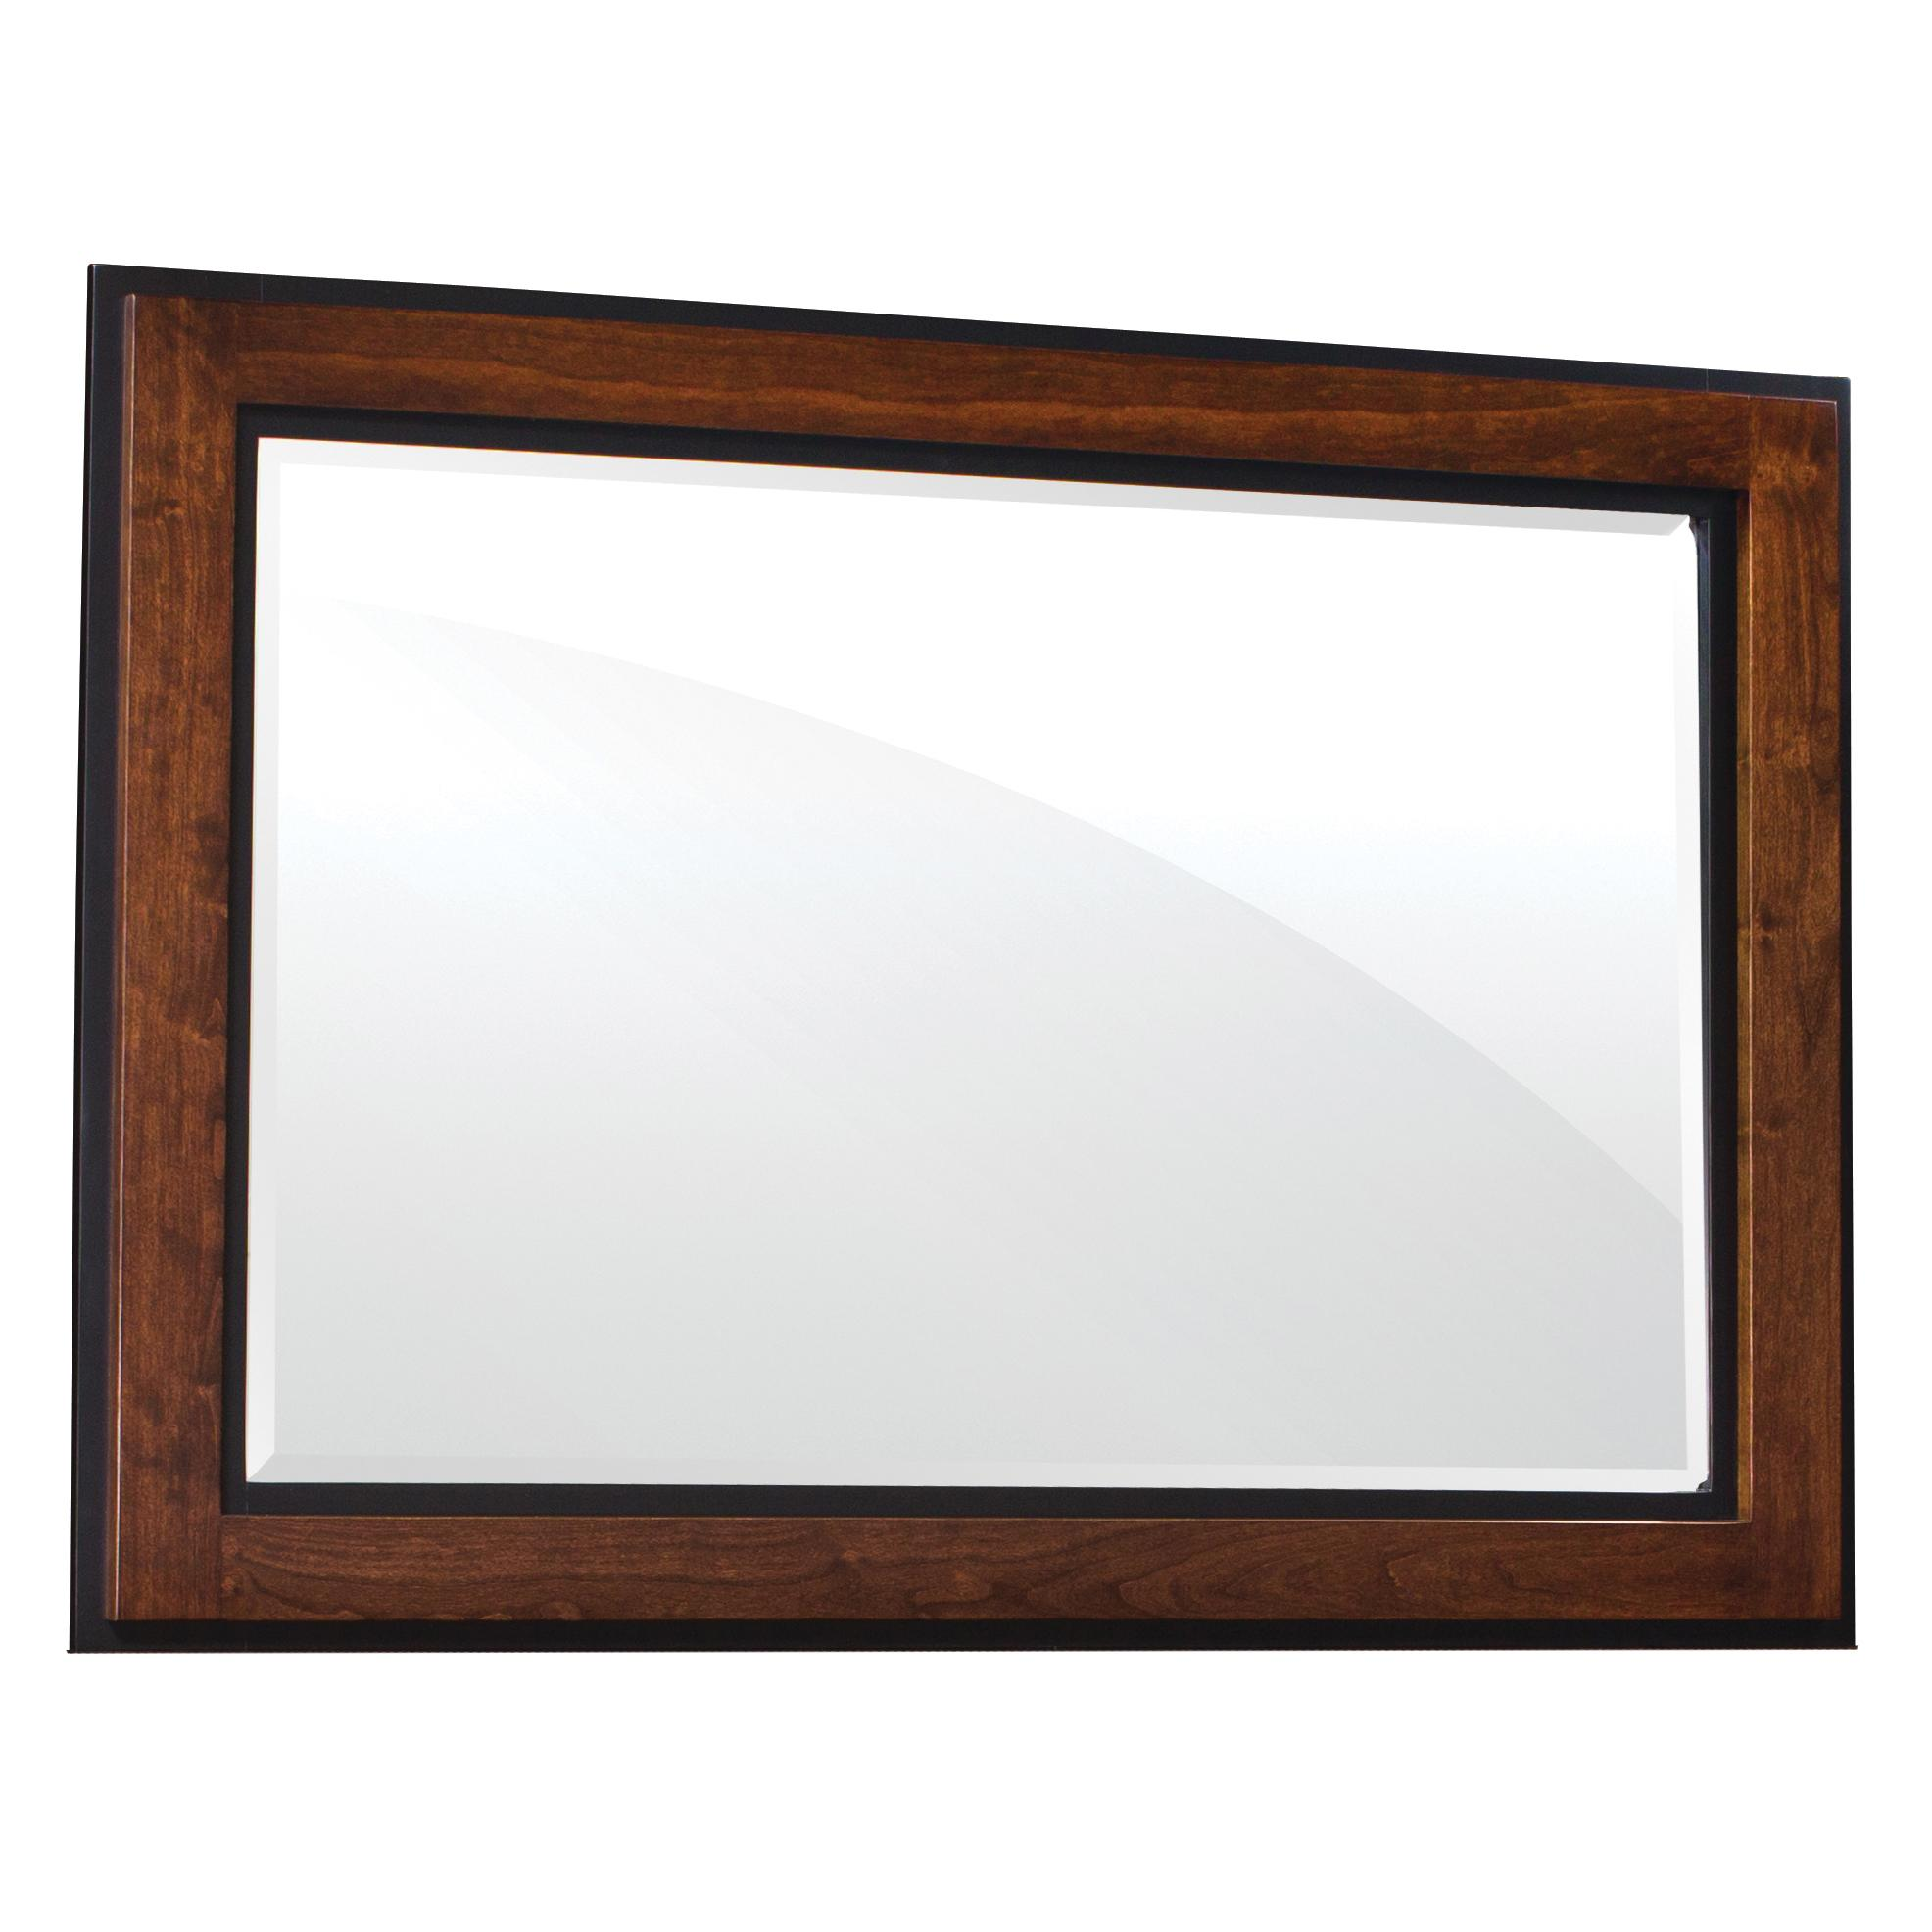 Simply Amish Frisco Mule Chest Mirror - Item Number: SMFRI-08A0-C30